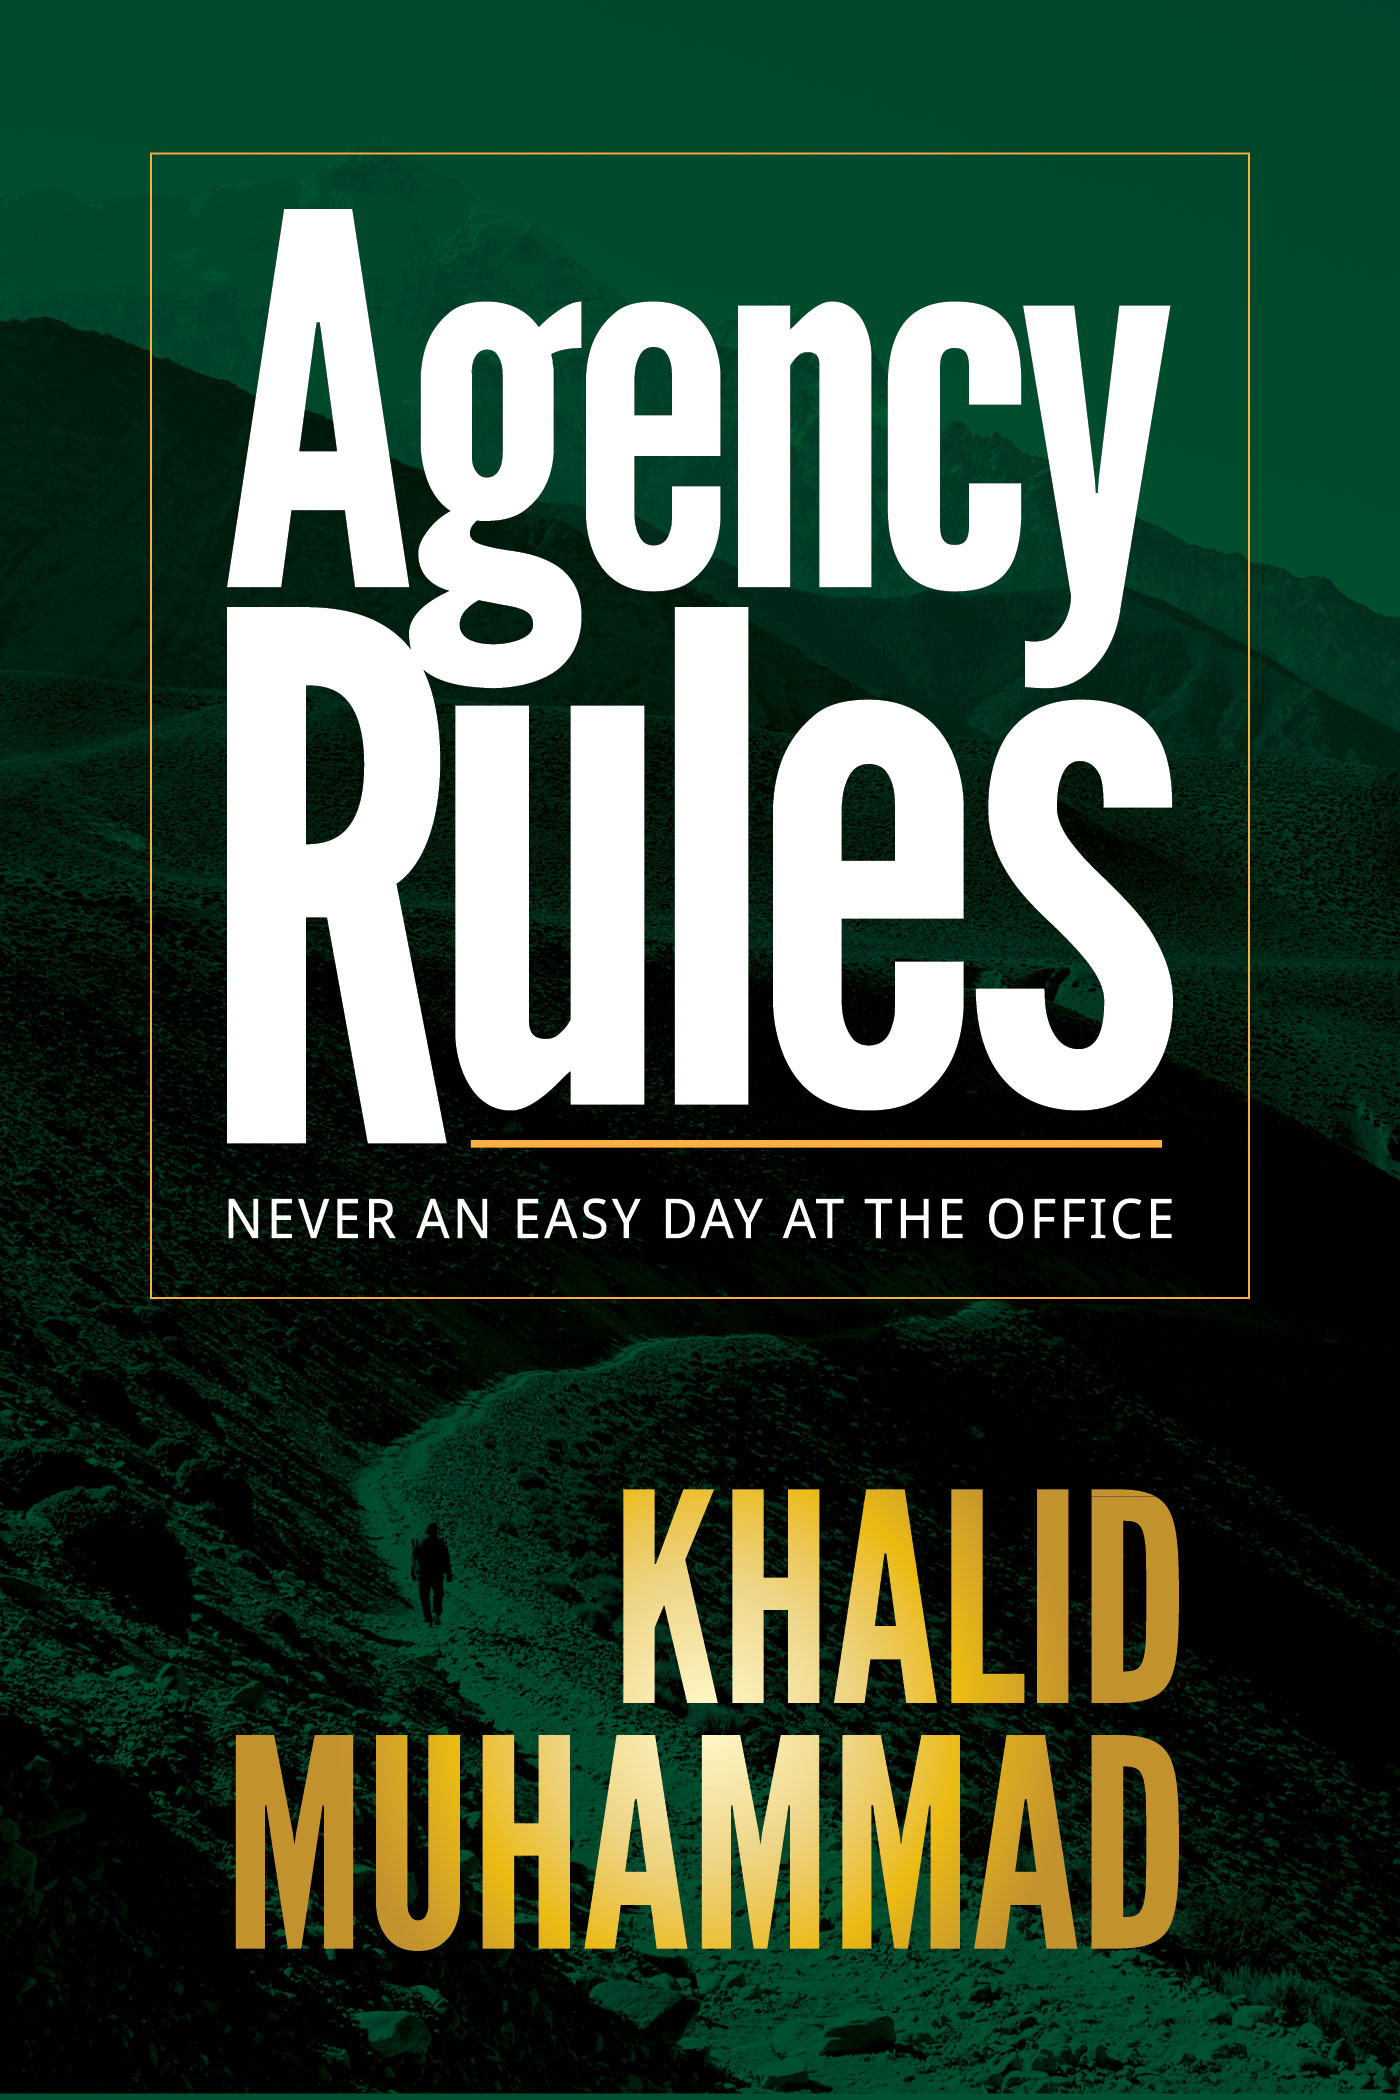 Agency Rules Updated Cover 01:19